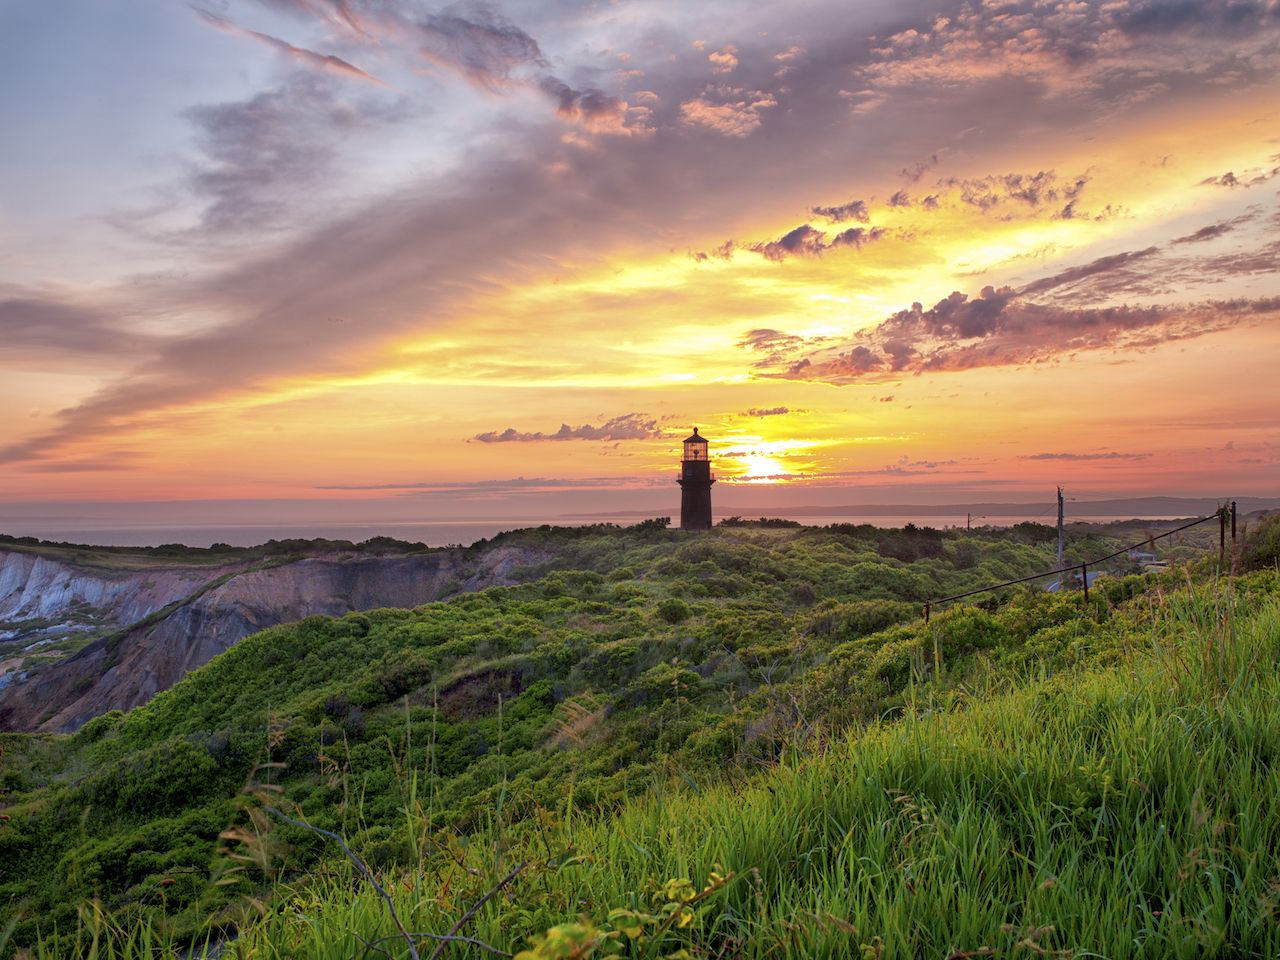 View of a lighthouse with colorful sky